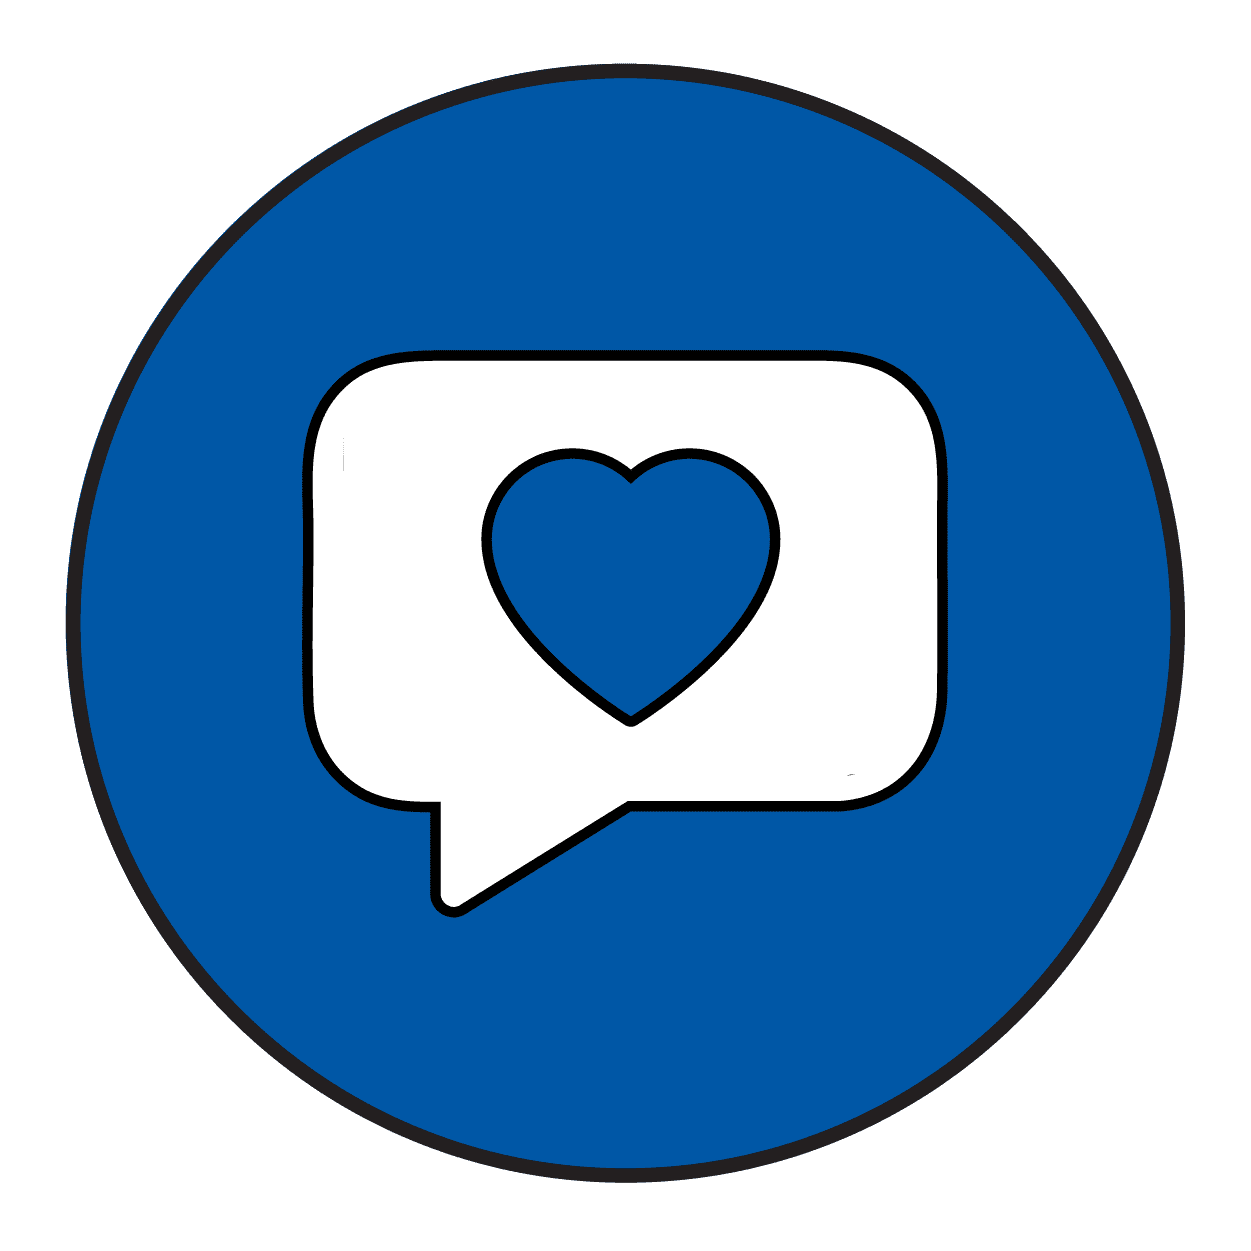 A blue icon of a speech bubble with a heart inside.